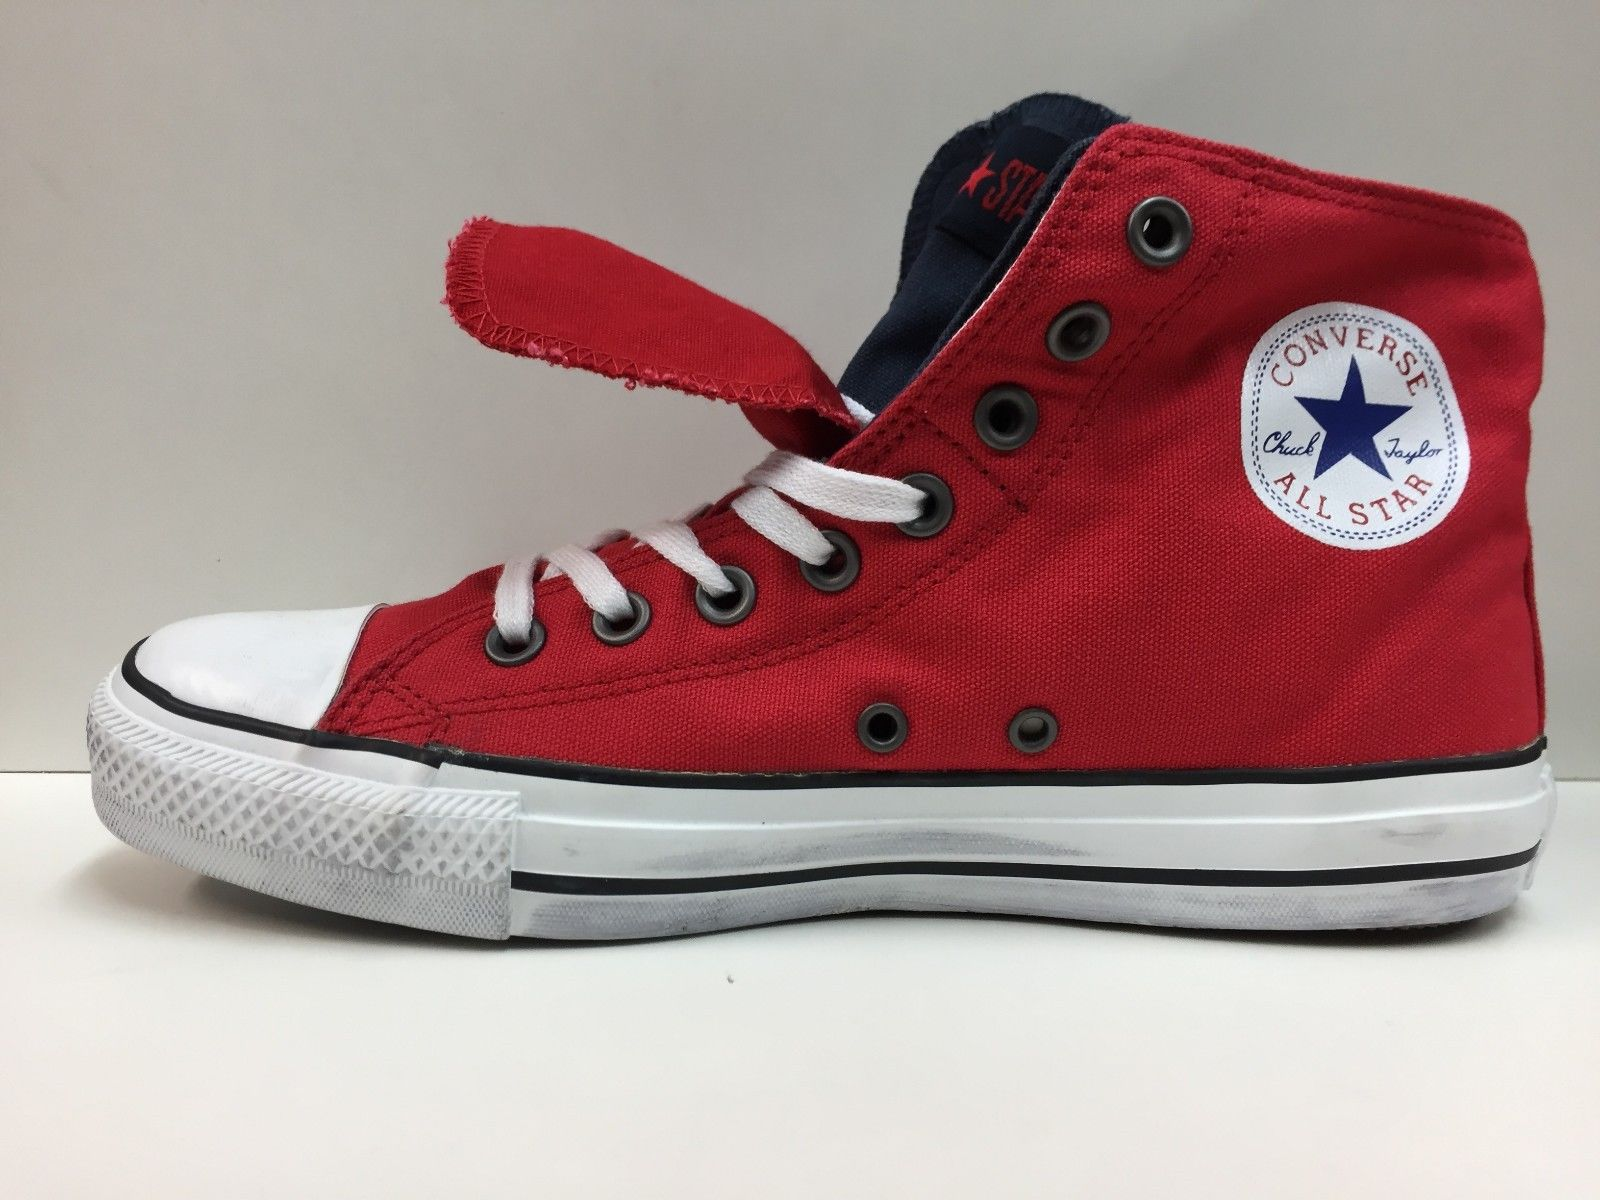 SCARPE SNEAKERS DONNA CONVERSE ALL STAR ORIGINALE CT TWOFOLD 123218 SHOES NEW